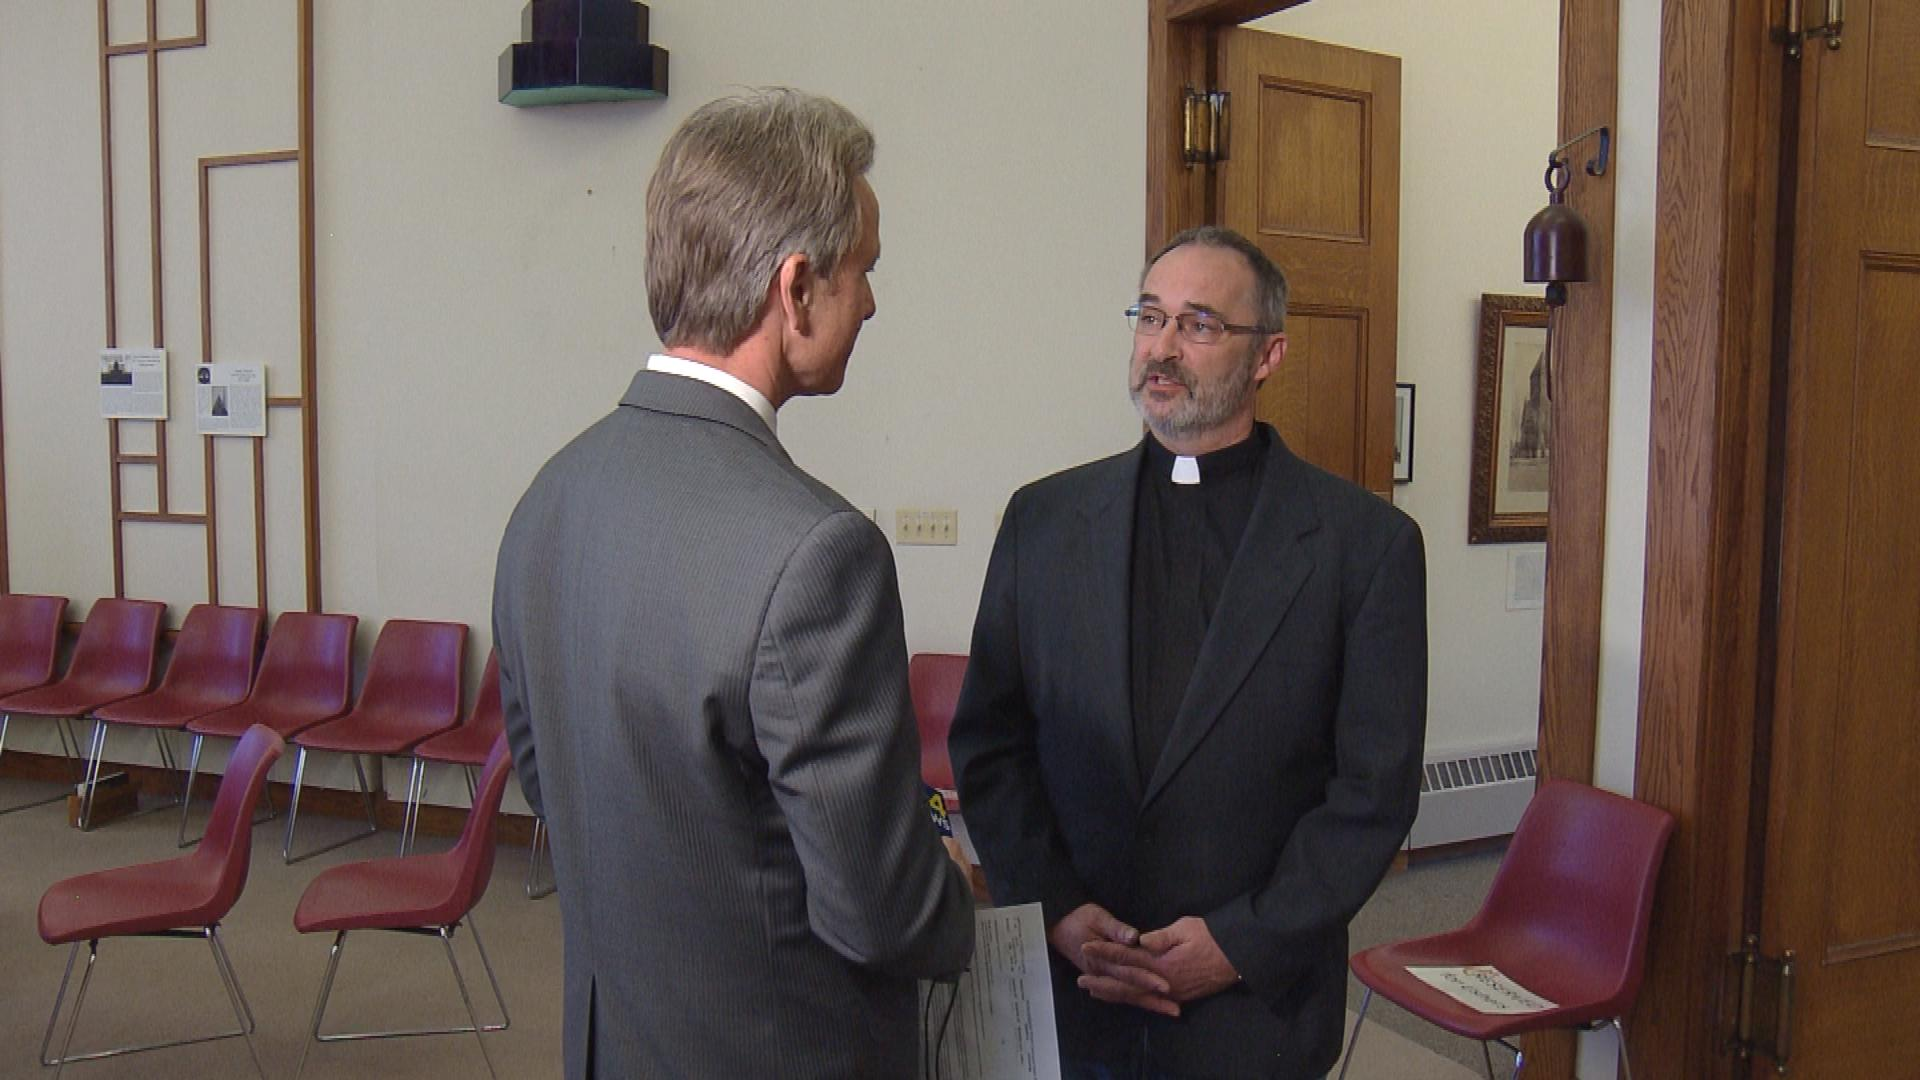 CBS4's Tom Mustin interviews Rev. Mike Morran (credit: CBS)